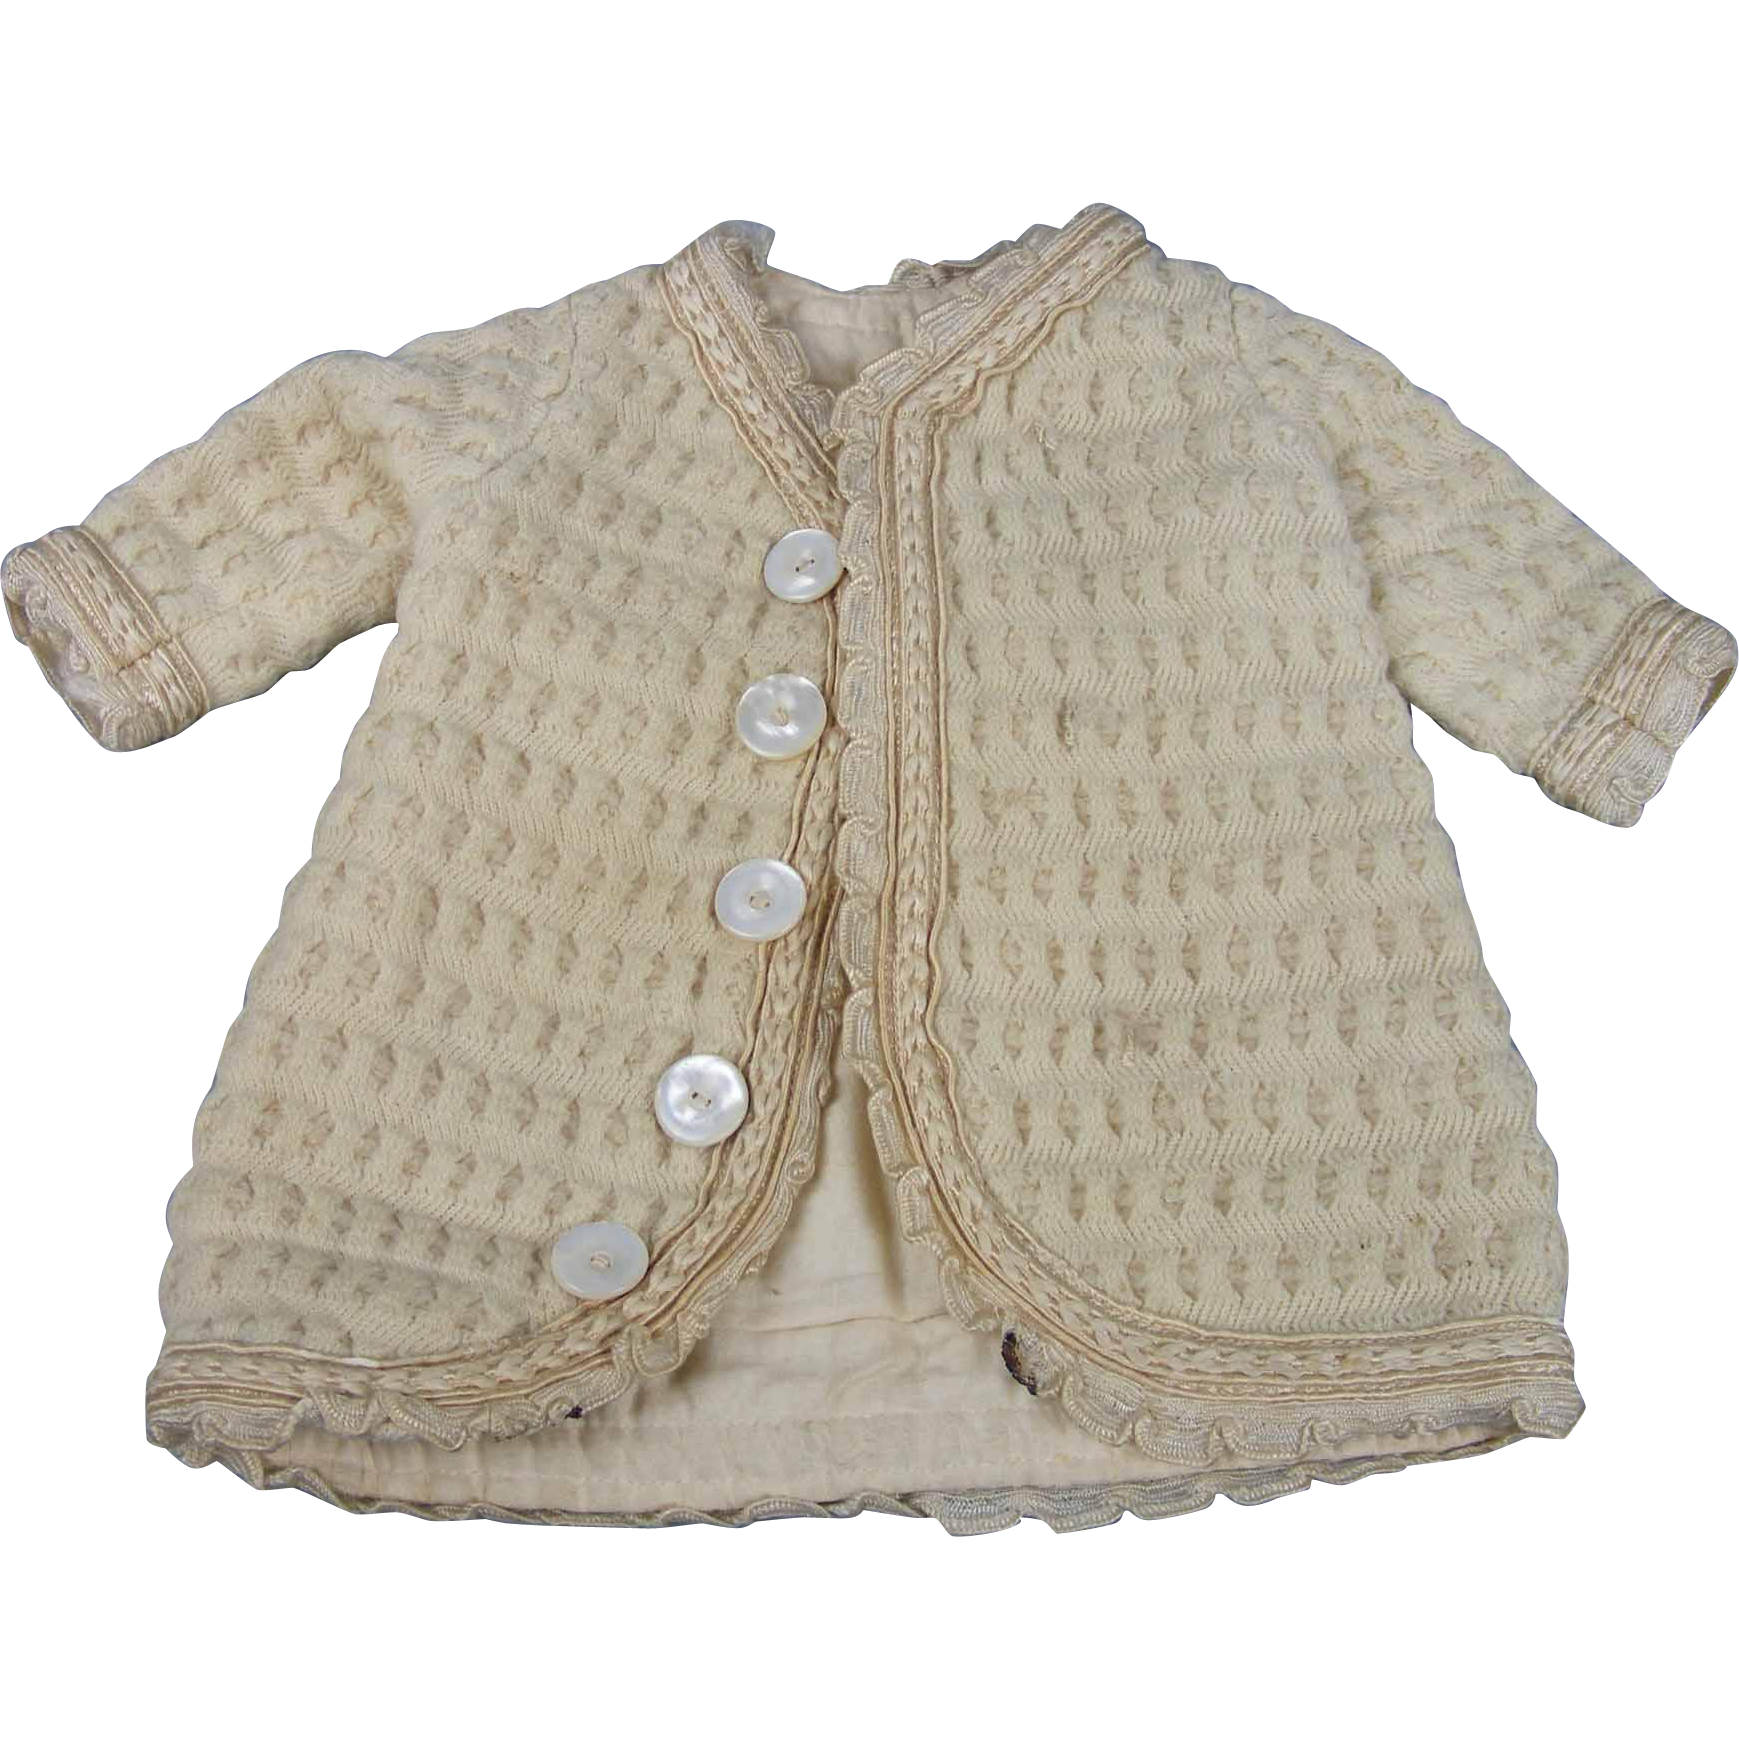 Old Doll Sweater or Coat for Antique Bisque or Composition Dolls